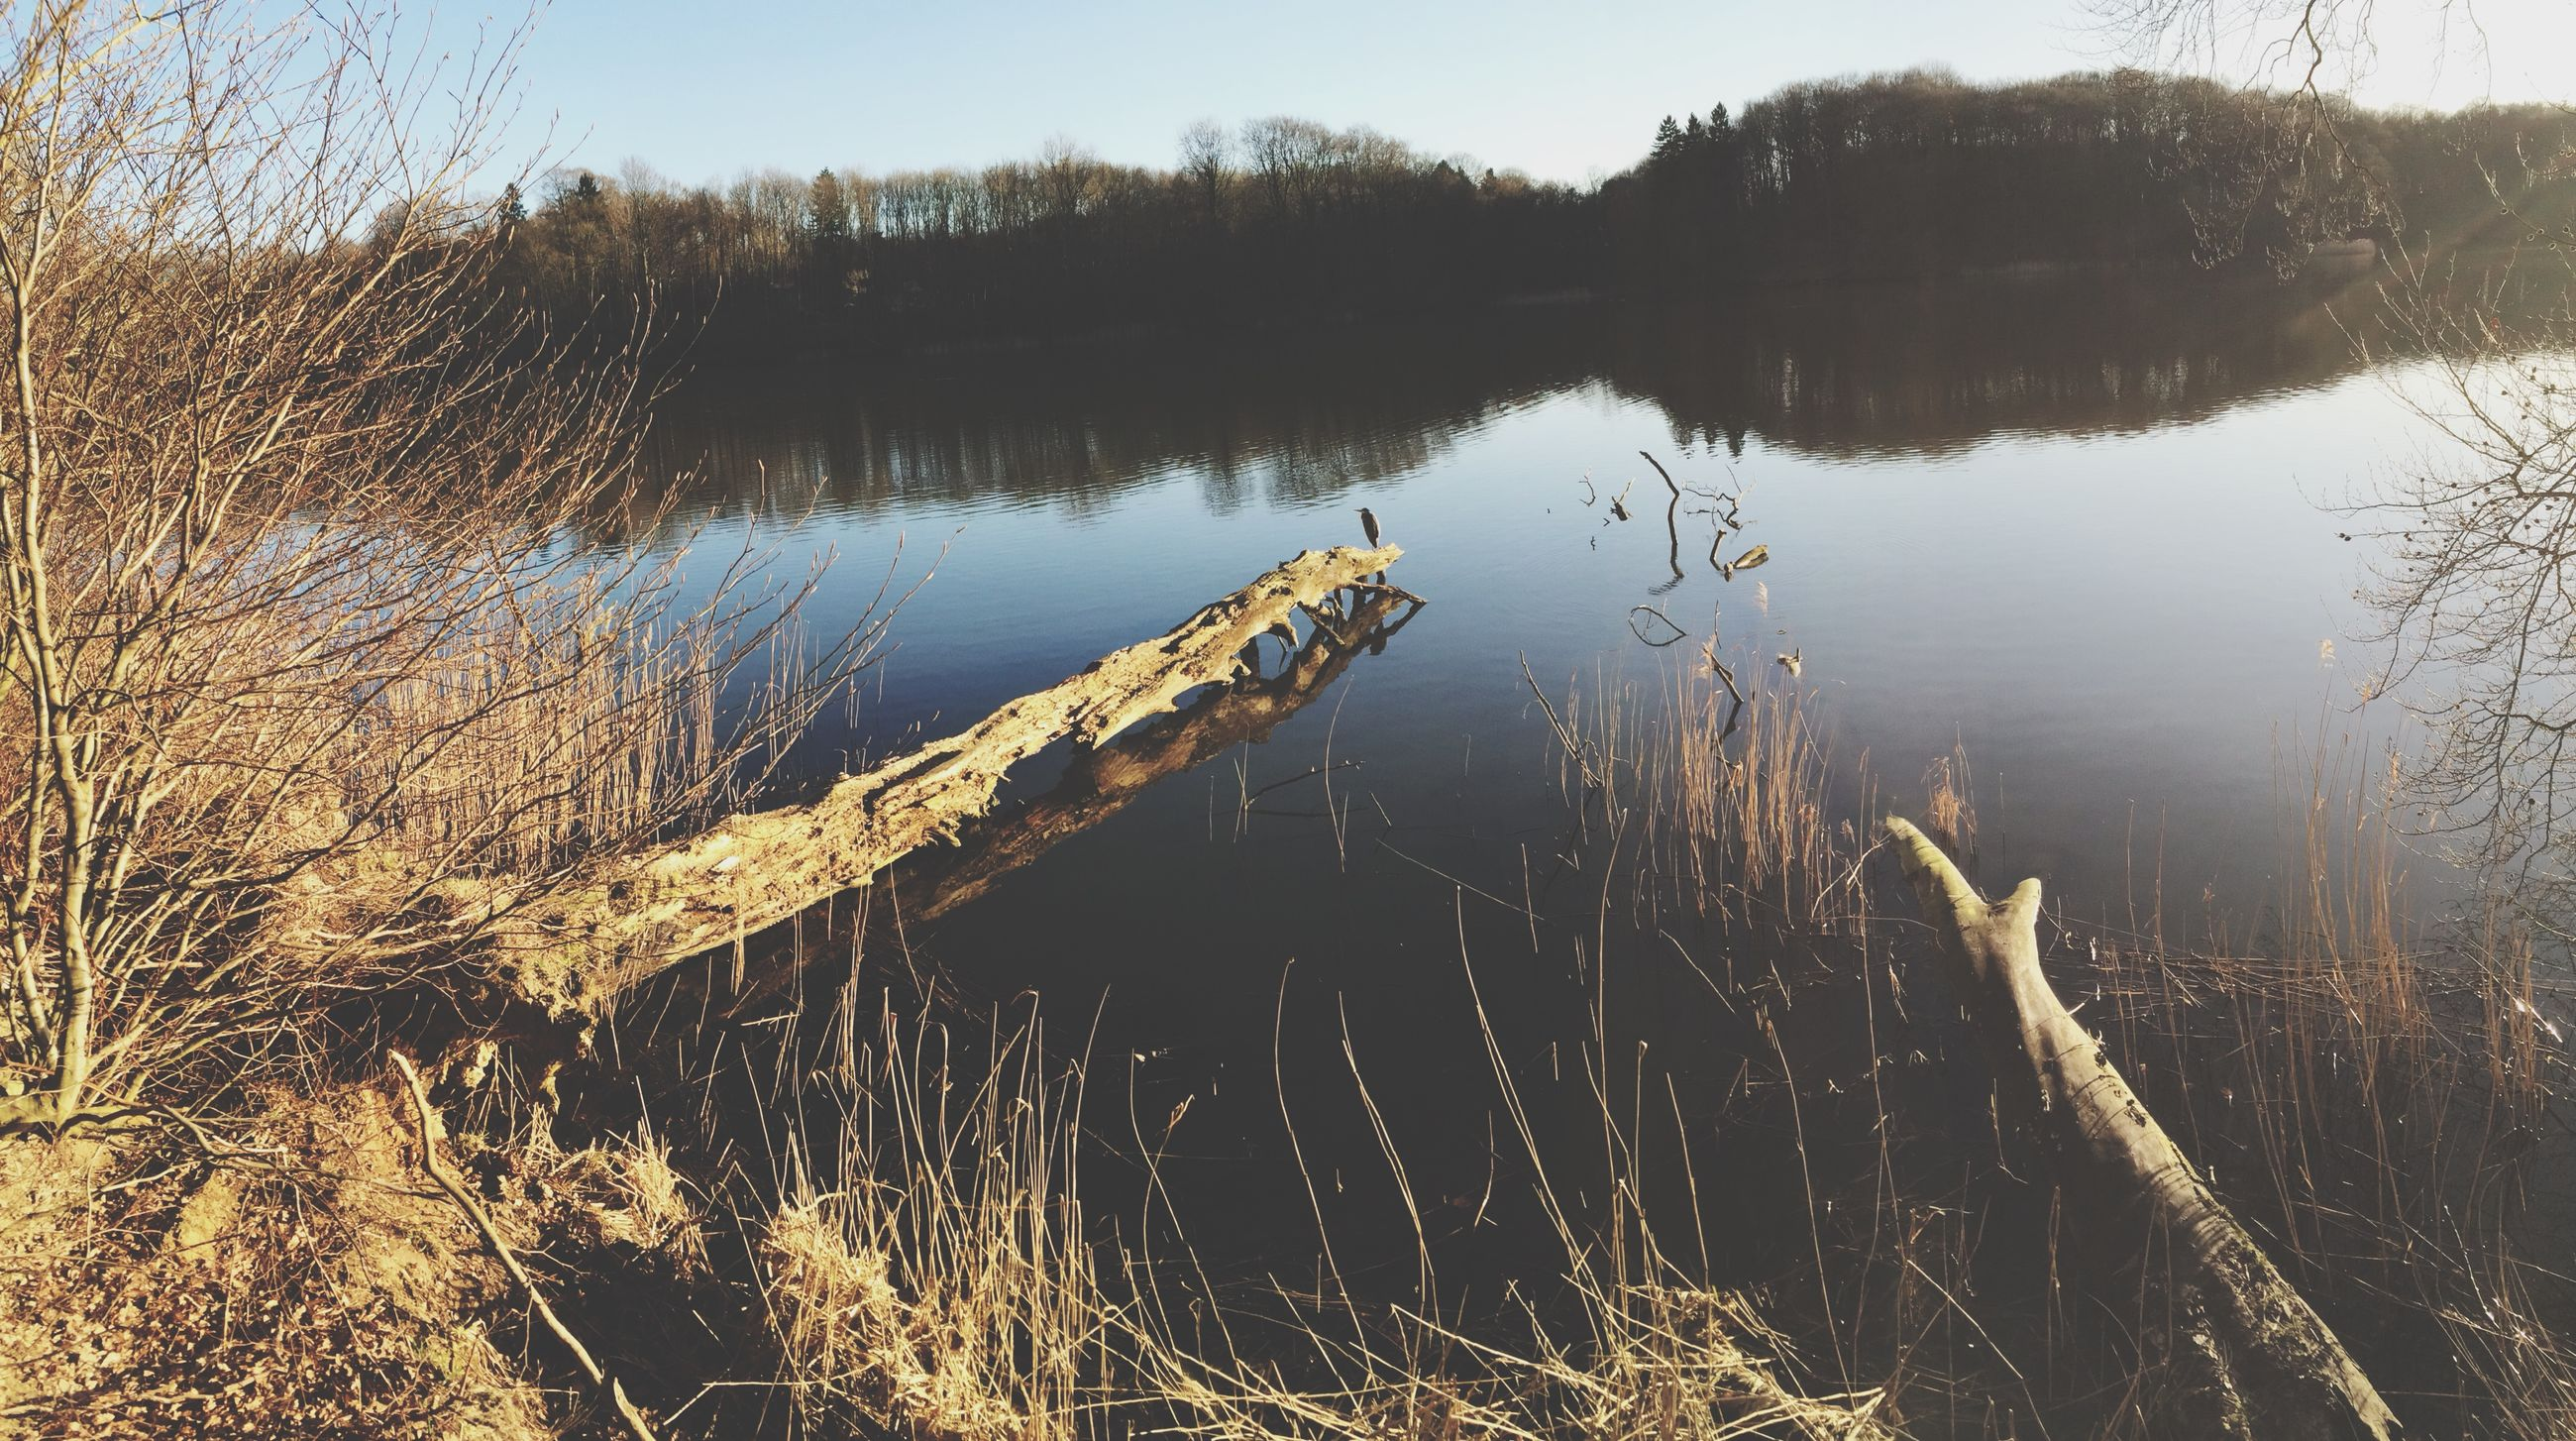 water, lake, reflection, tranquility, nature, tranquil scene, beauty in nature, tree, scenics, grass, lakeshore, plant, outdoors, standing water, river, no people, forest, growth, sky, day